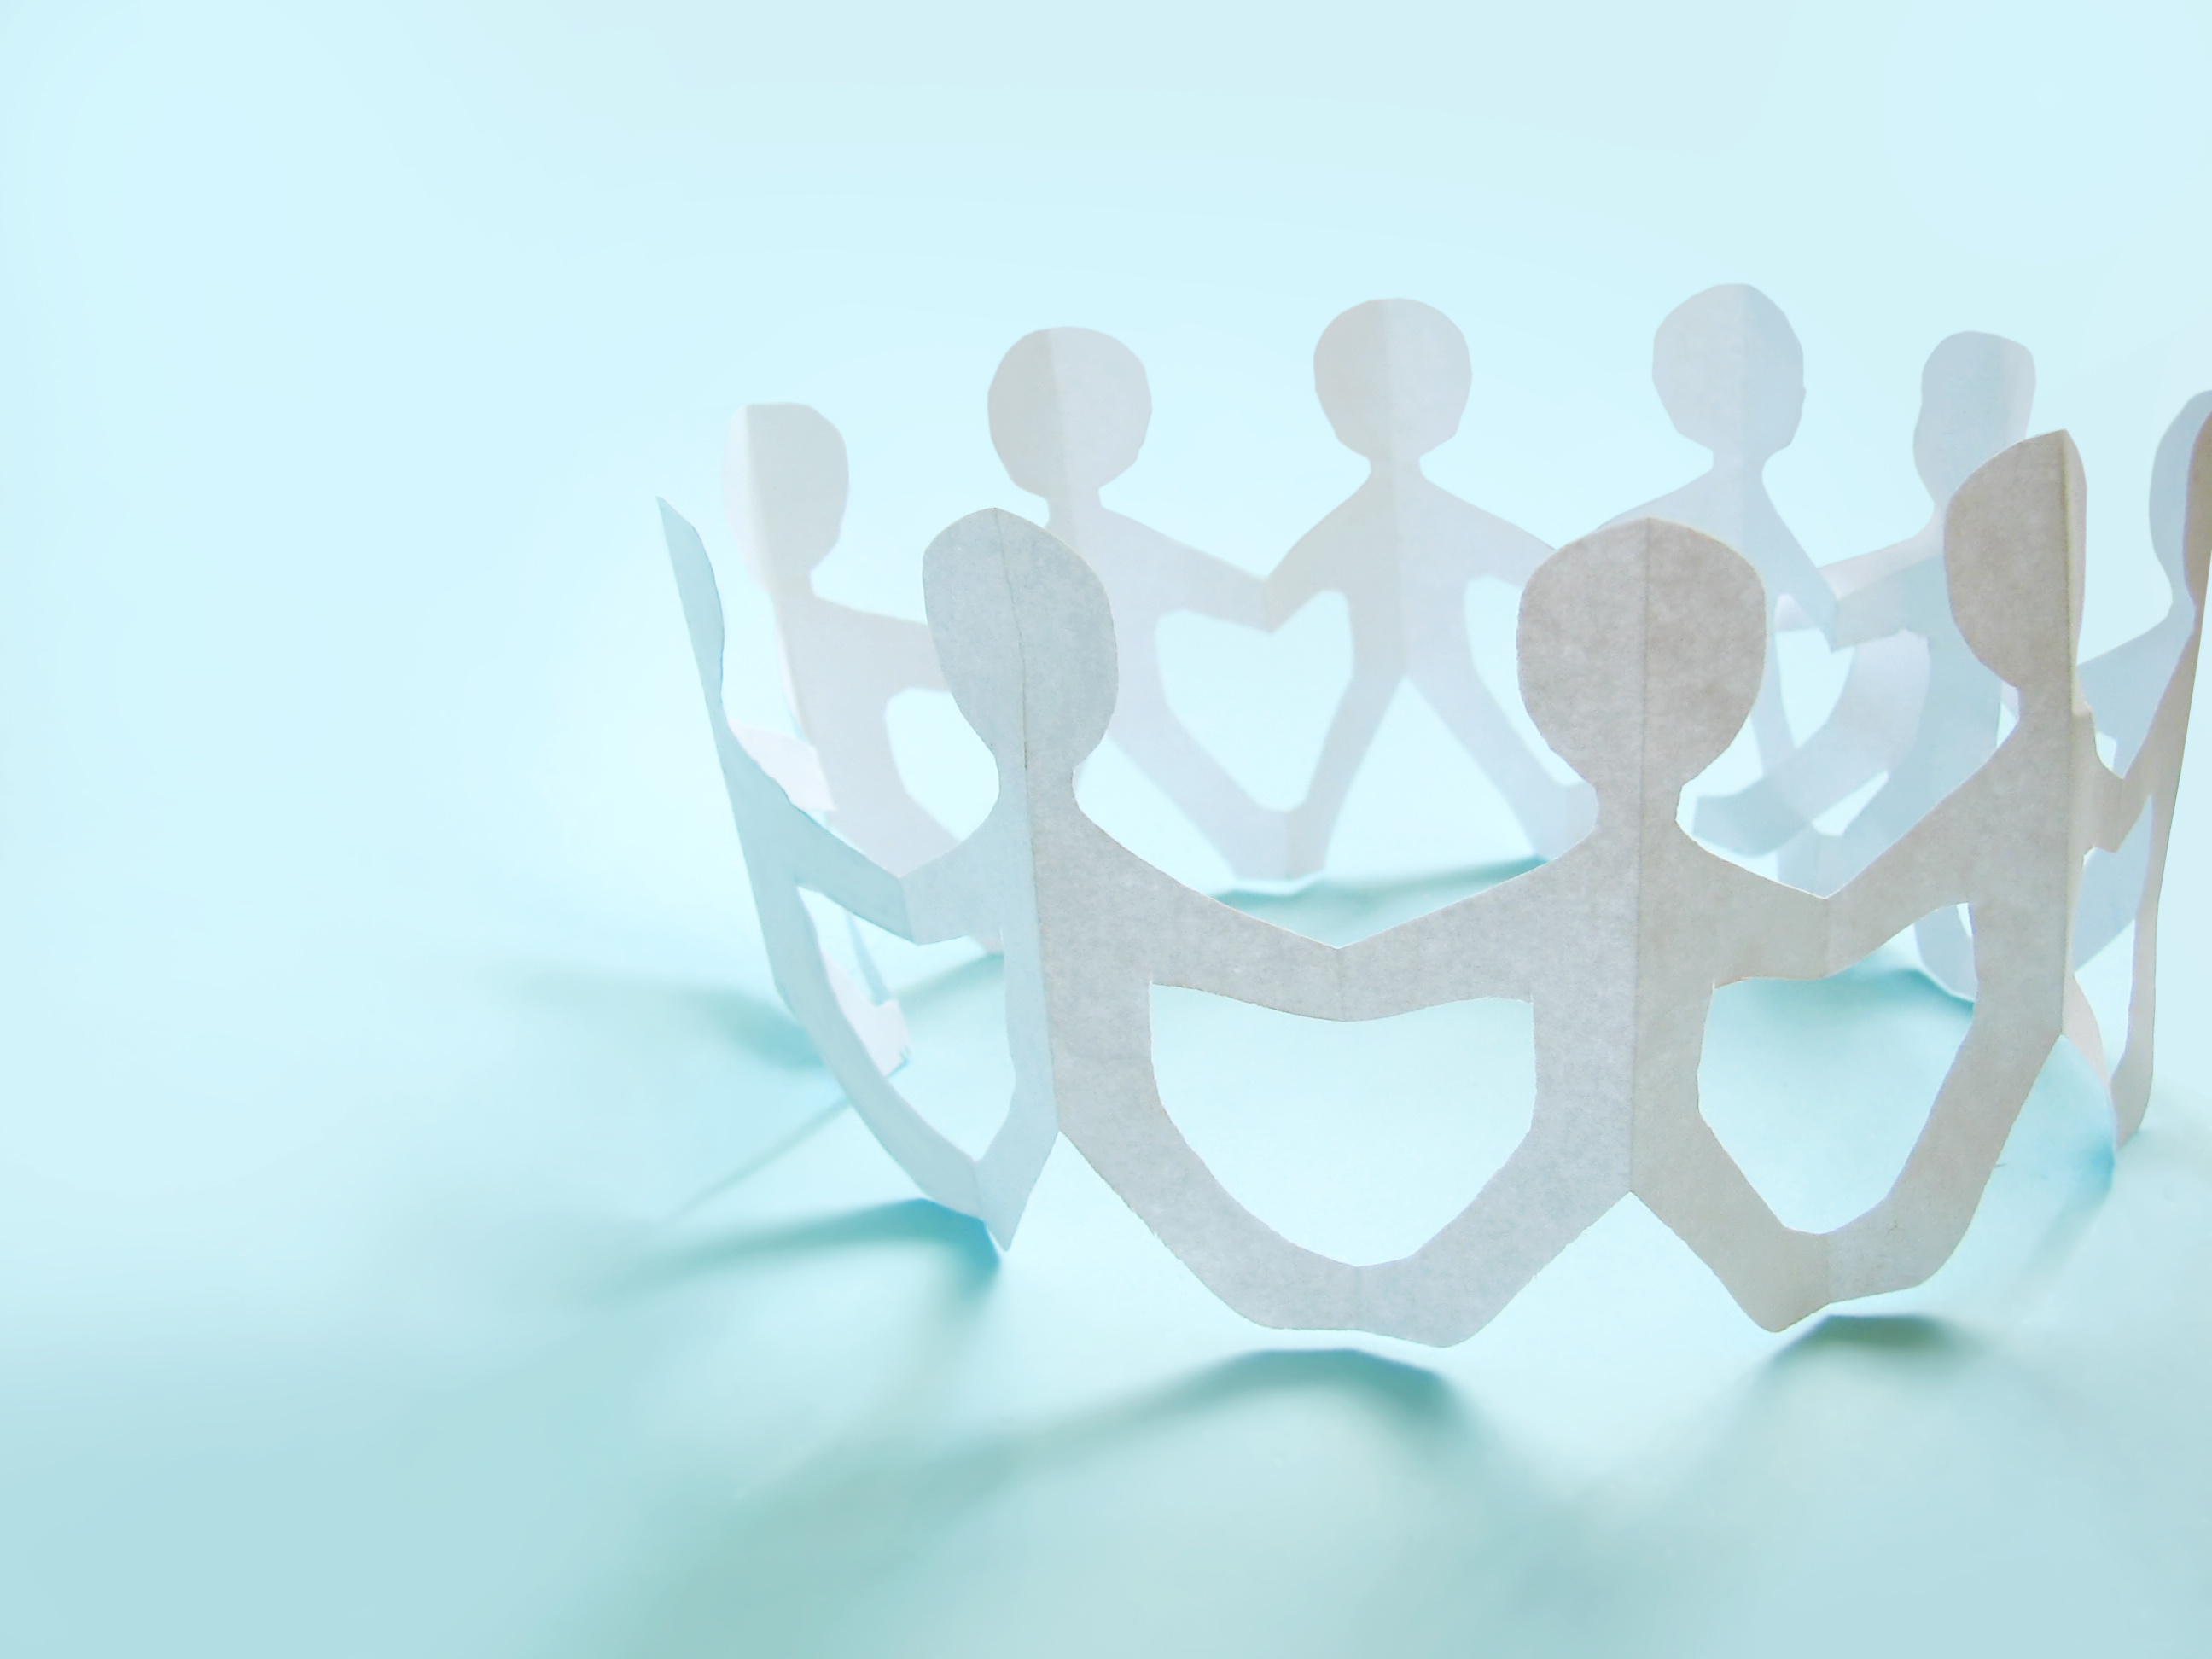 7 Ways To Build Great Relationships With Your Team - Be Leaderly